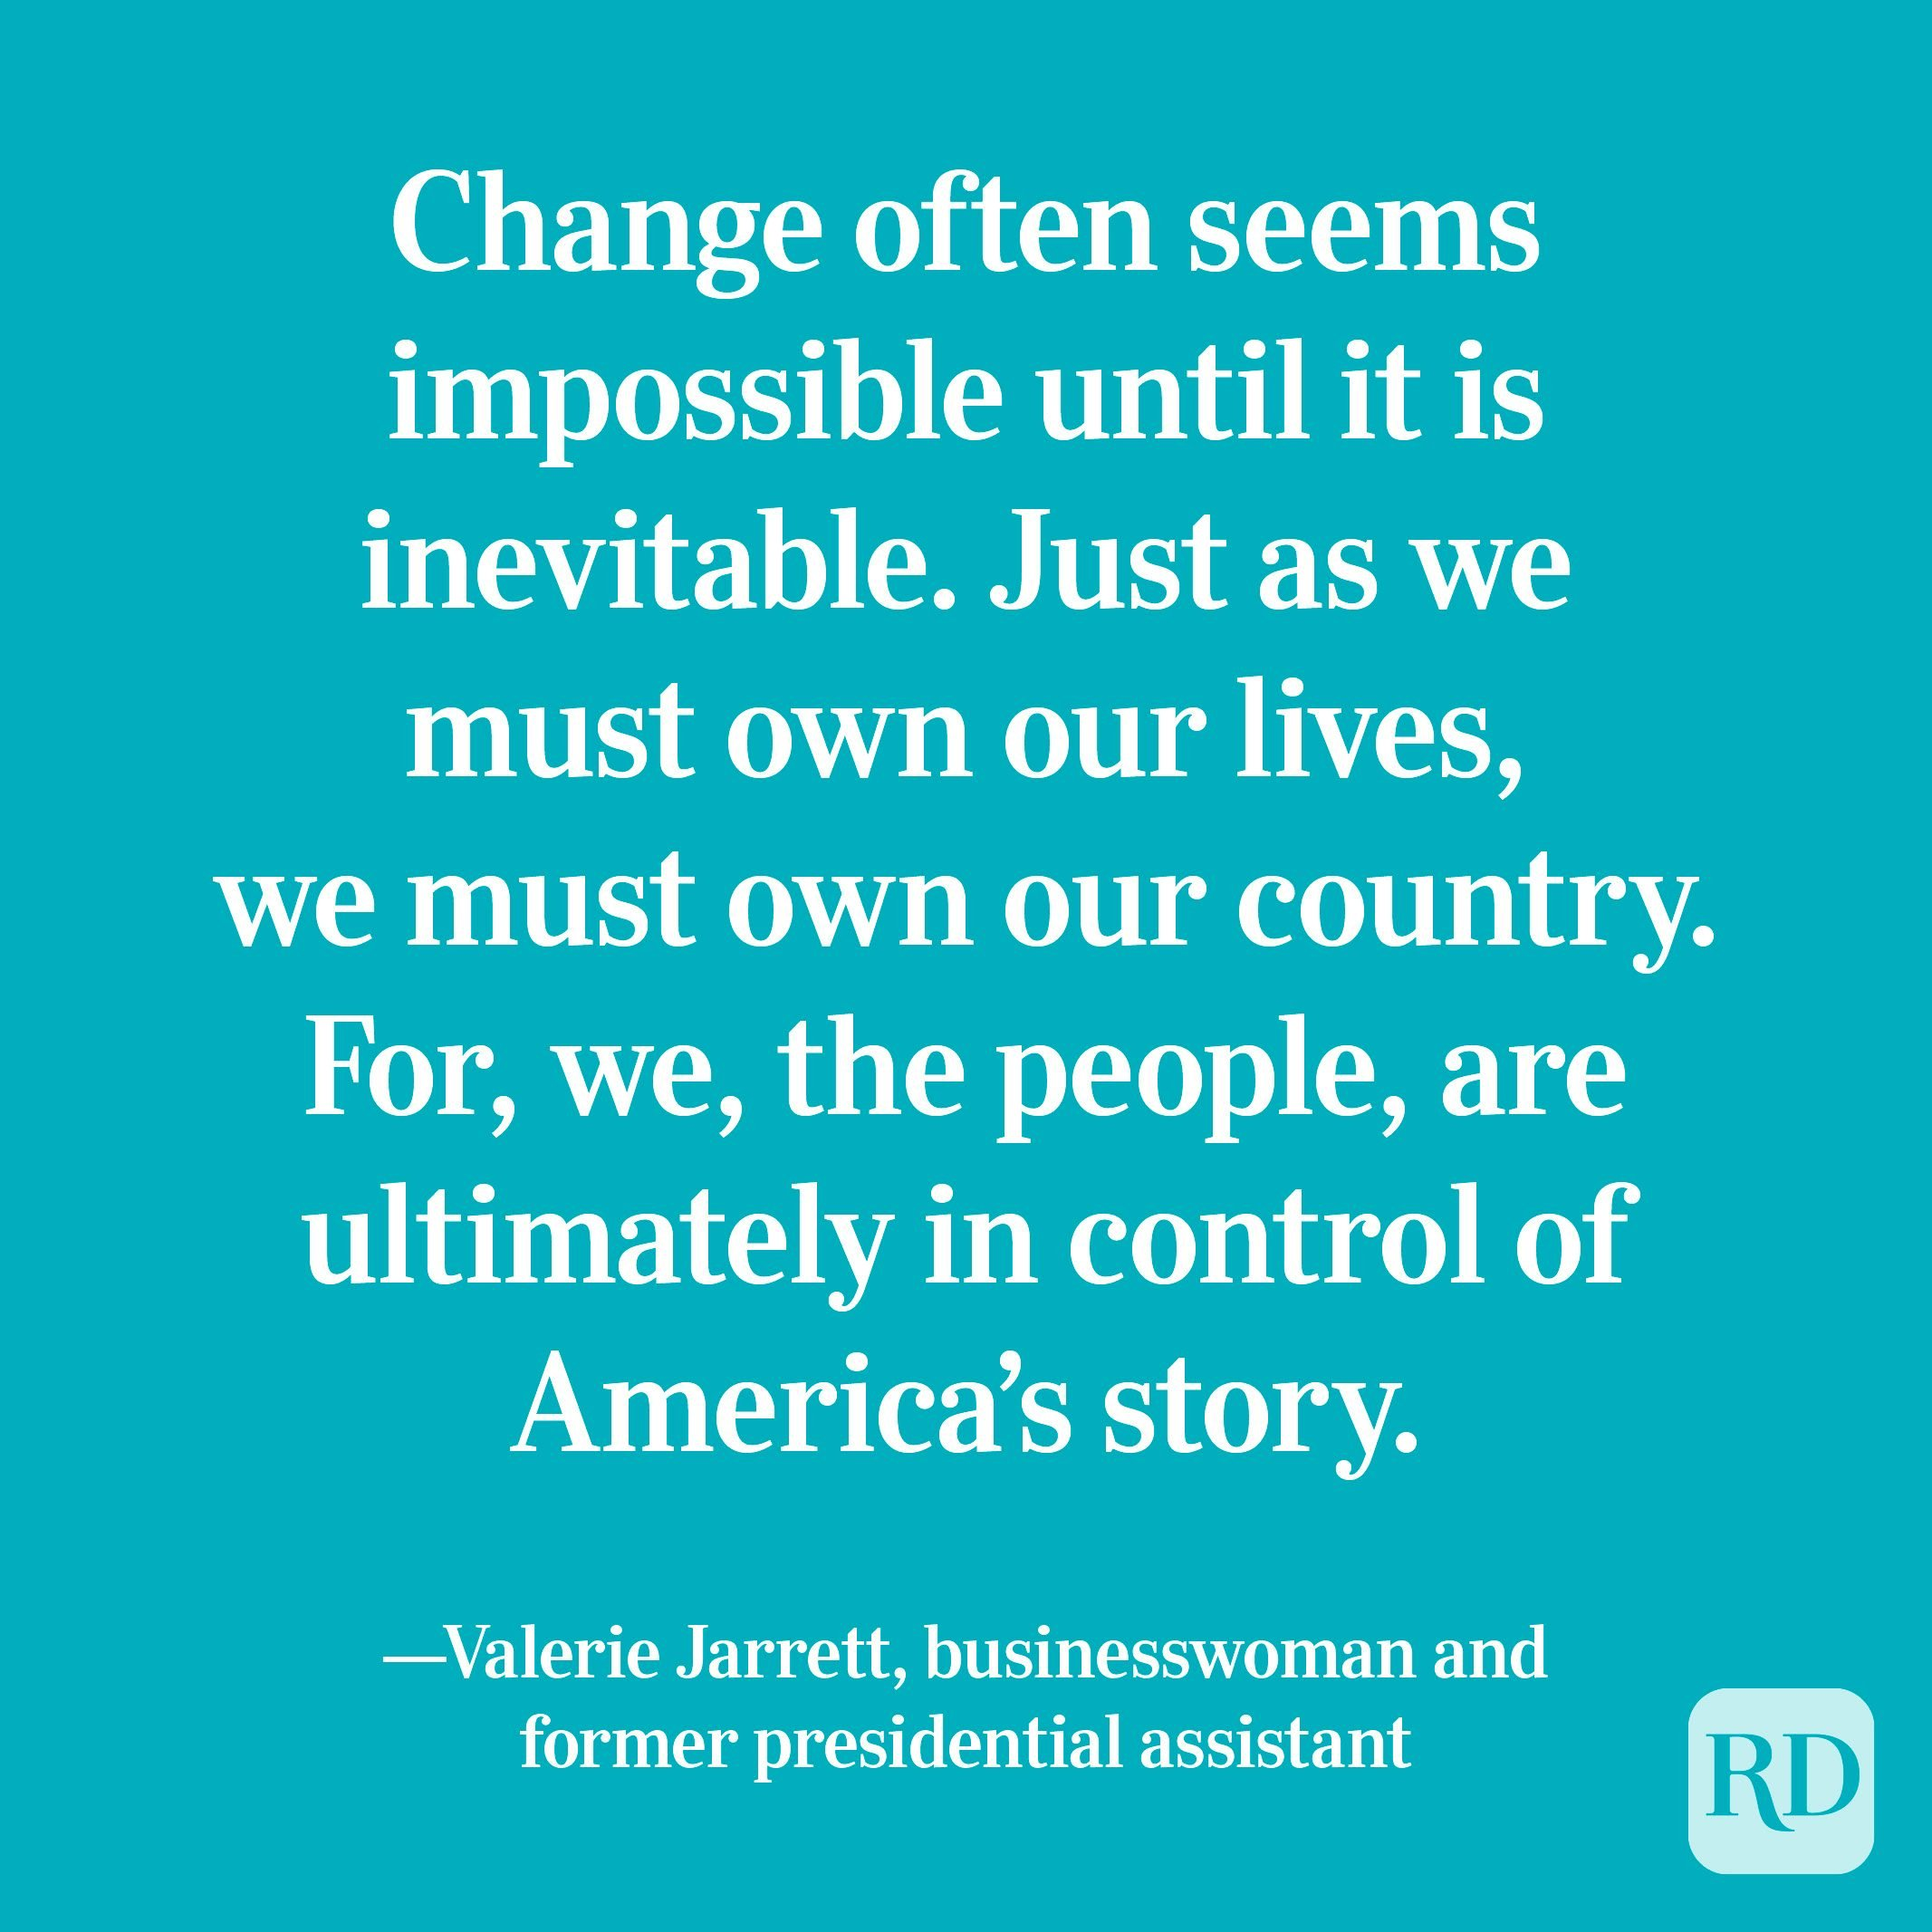 """""""Change often seems impossible until it is inevitable. Just as we must own our lives, we must own our country. For, we, the people, are ultimately in control of America's story."""" —Valerie Jarrett, businesswoman and former presidential assistant."""